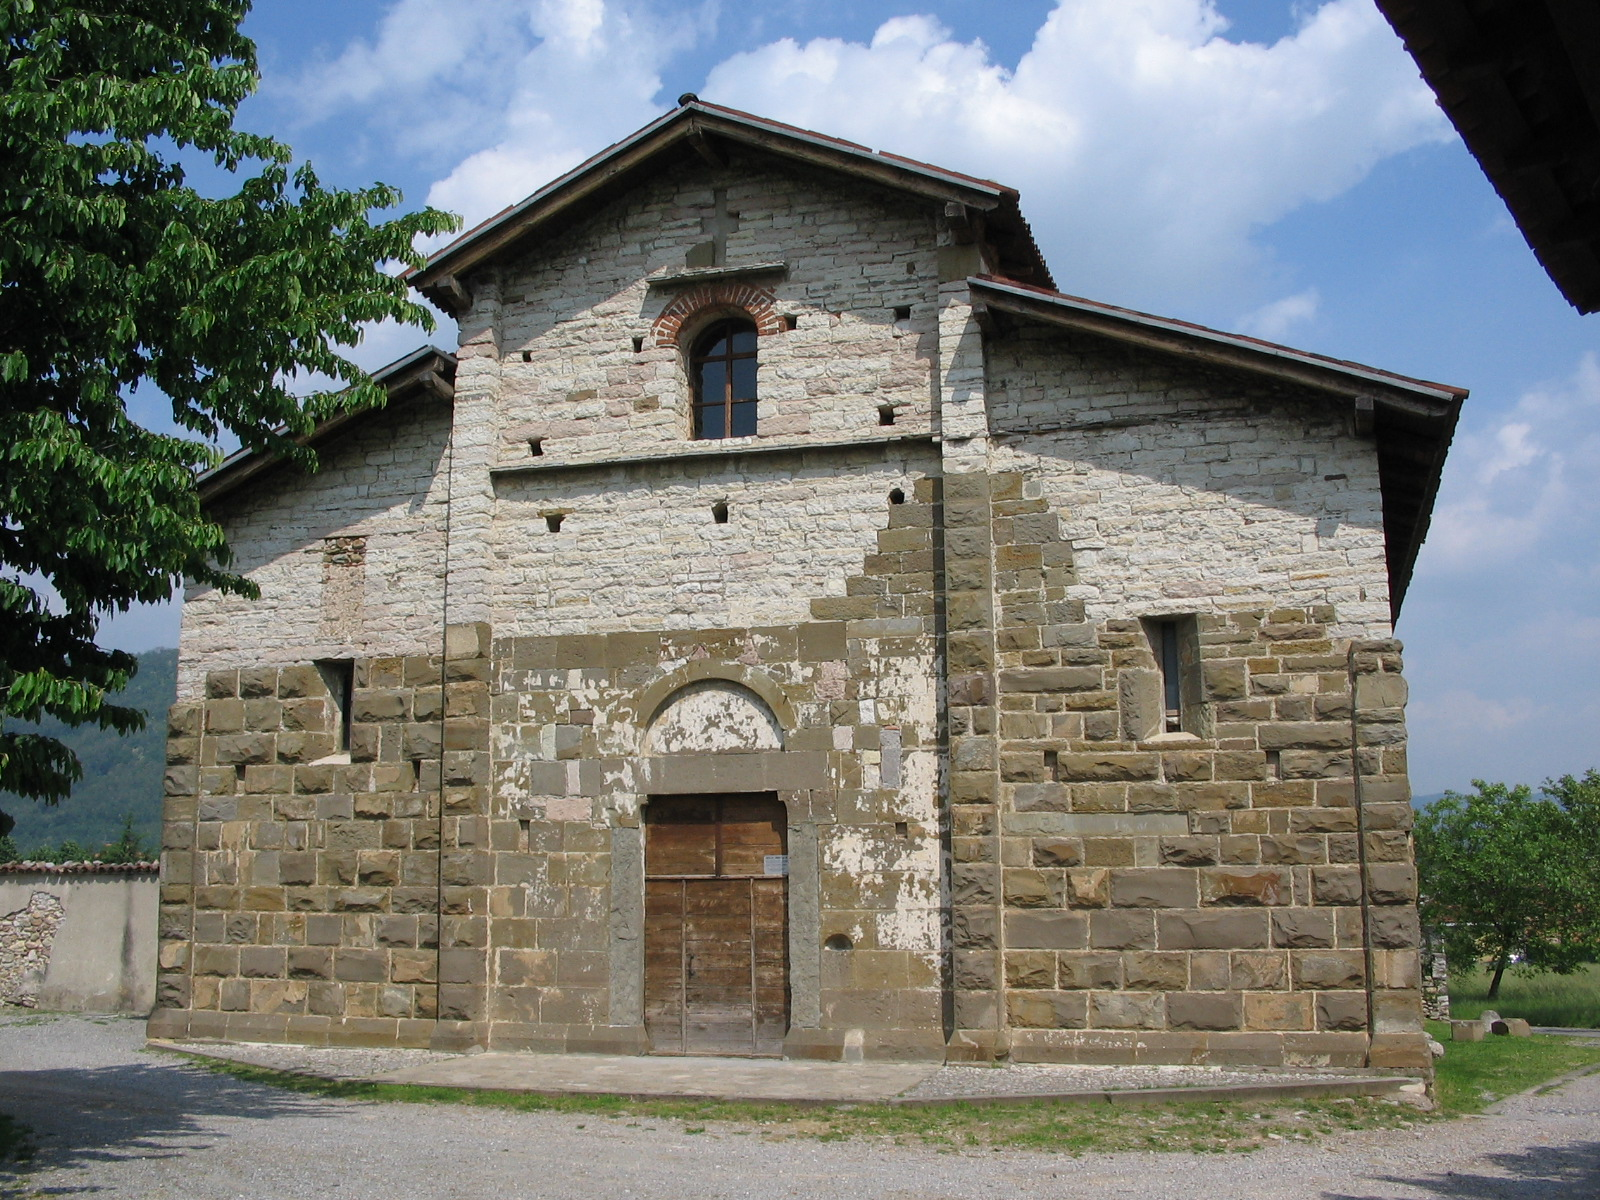 Places of Torture in Italy: Church of San Giorgio  in Lemine